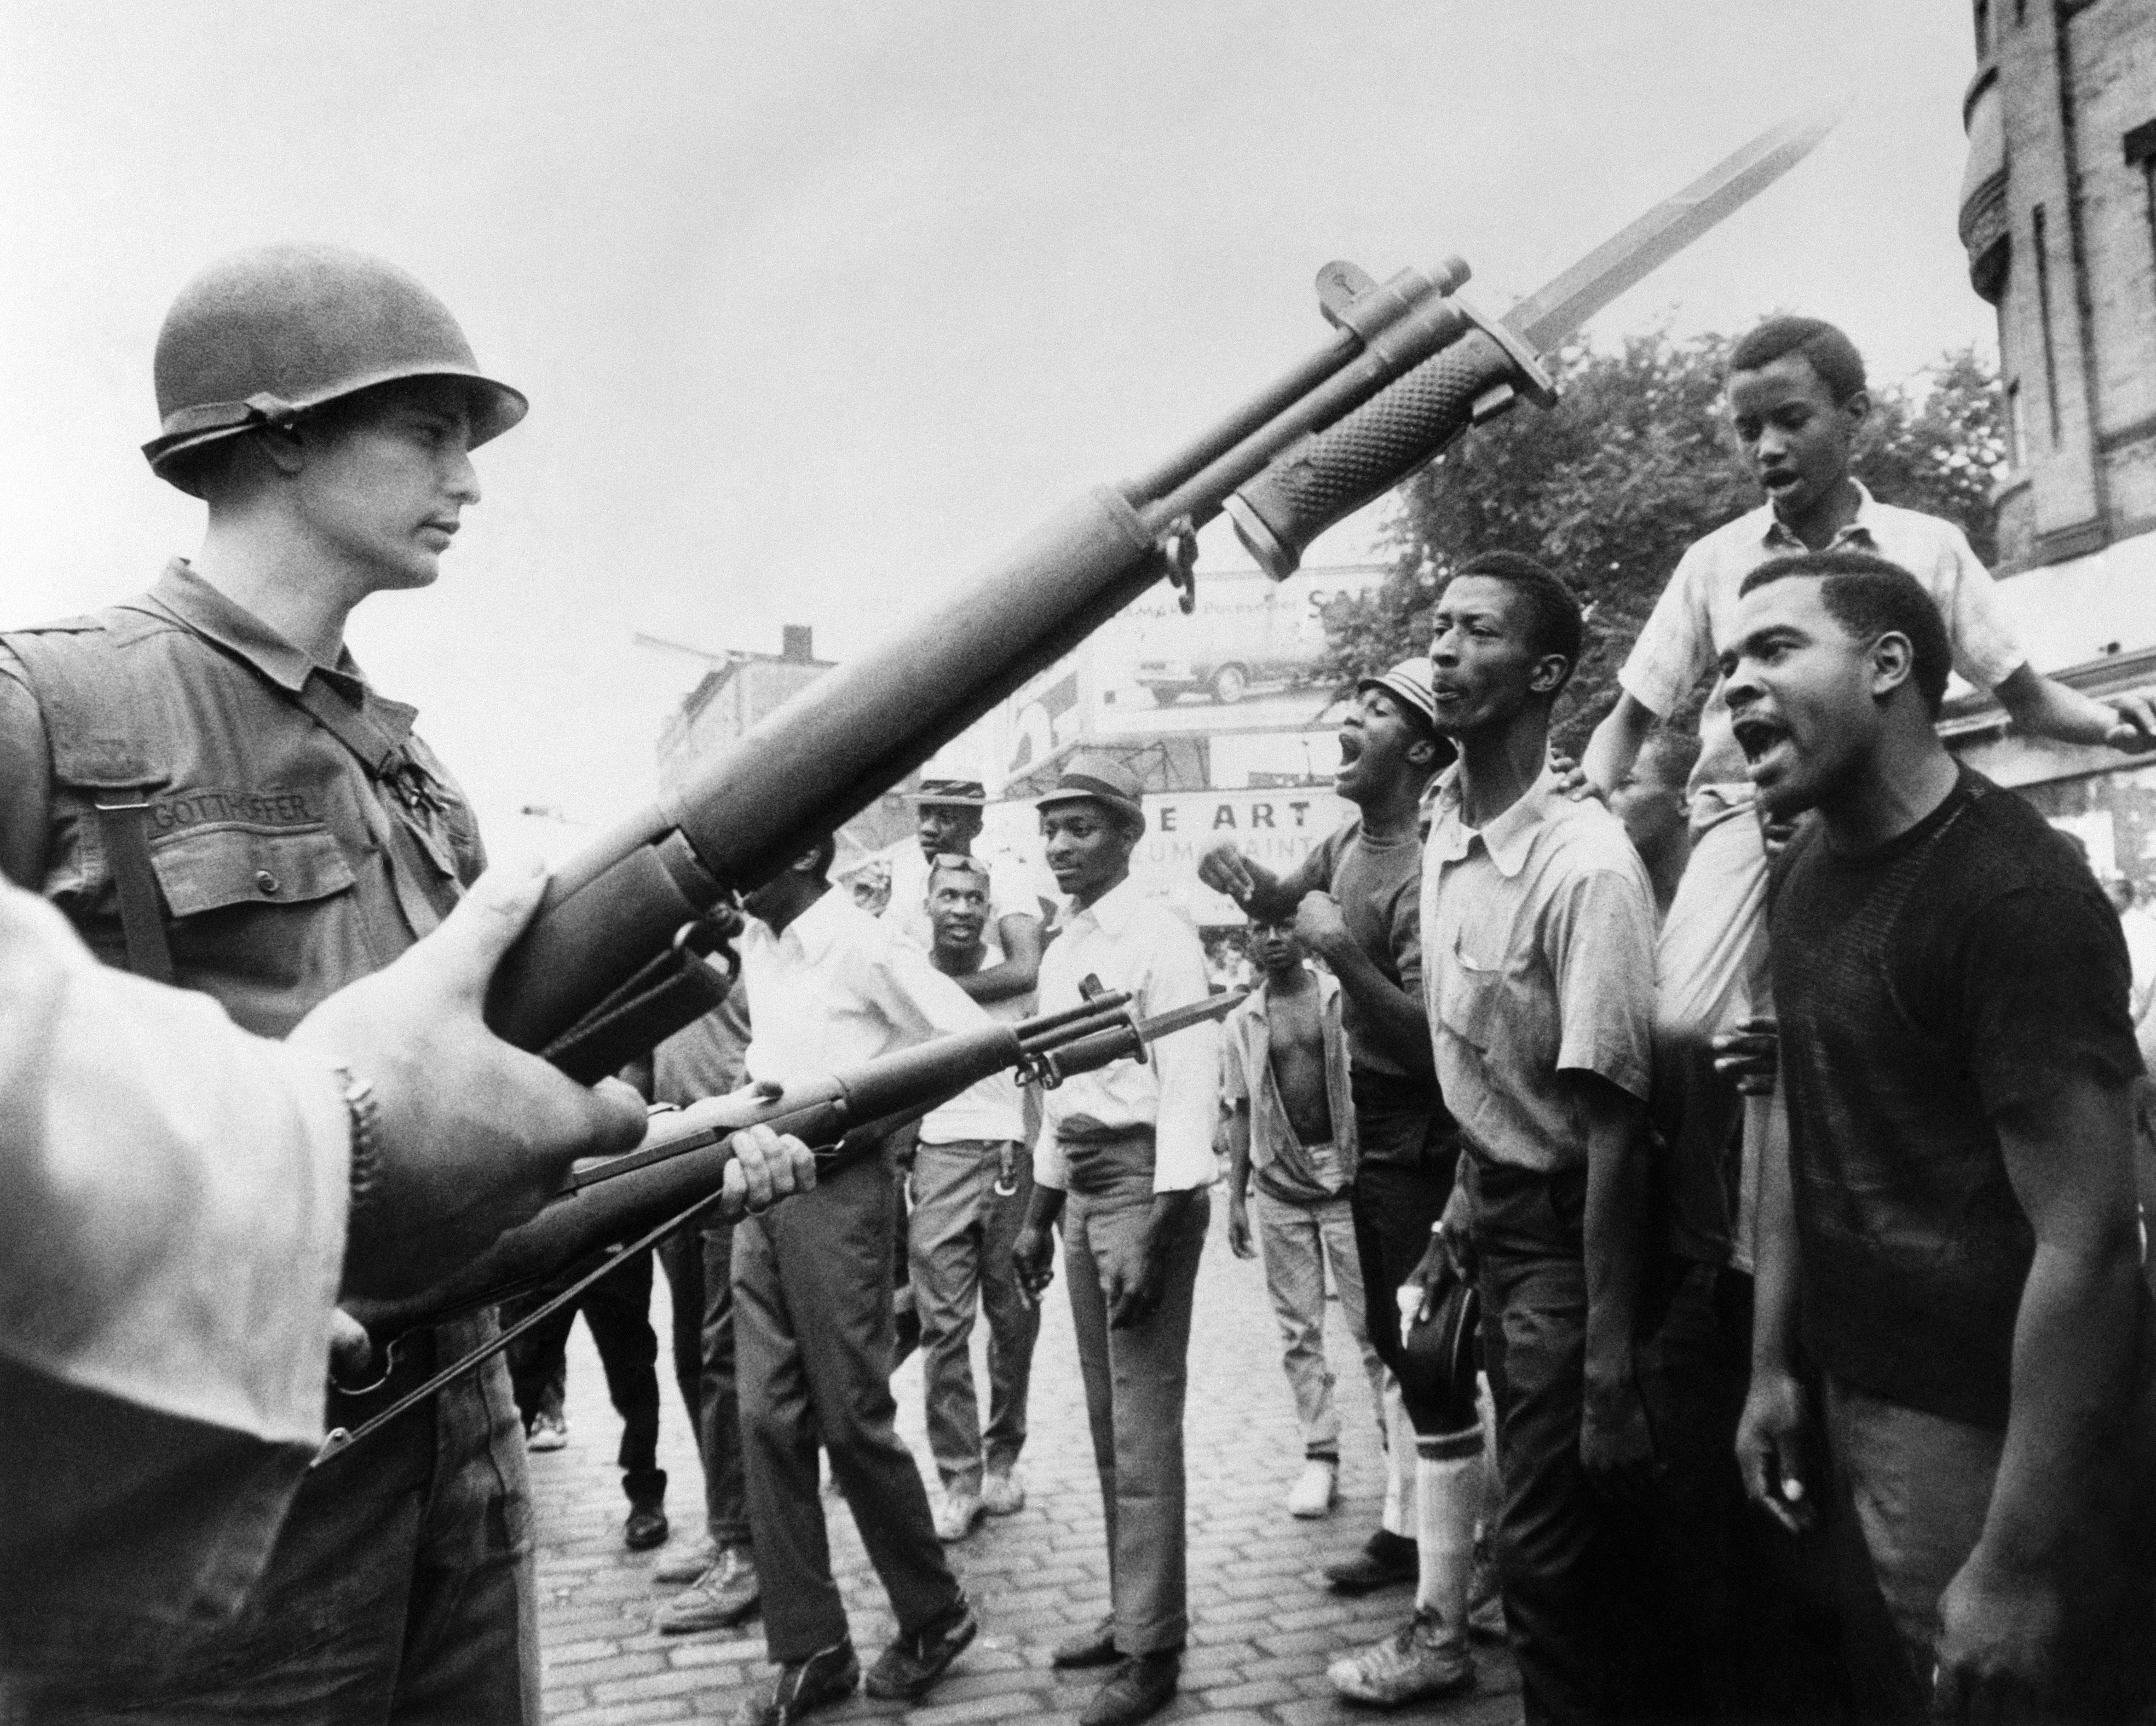 Black demonstrators face armed federal soldiers in Newark on July 17, 1967 during riots that erupted in the city.